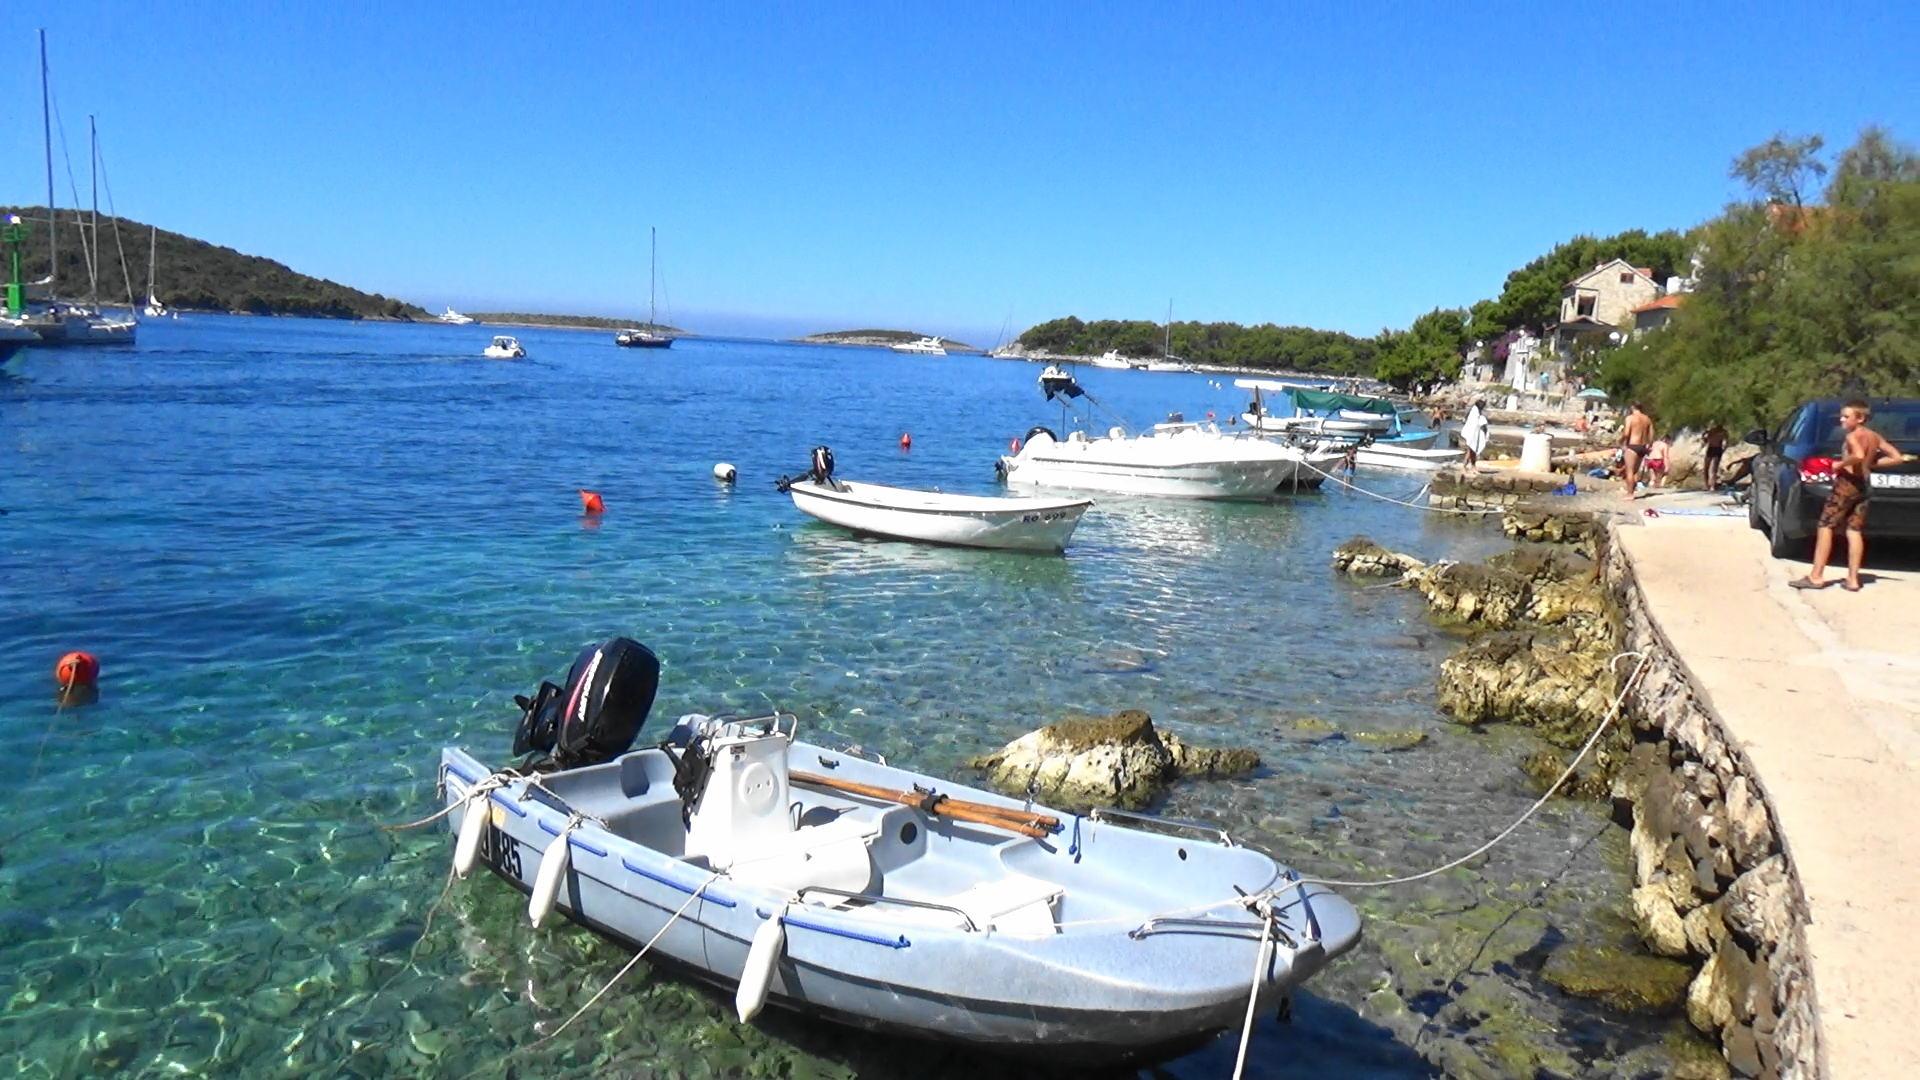 VIDEO: MASLINICA, ISLA DE SOLTA (CROACIA)